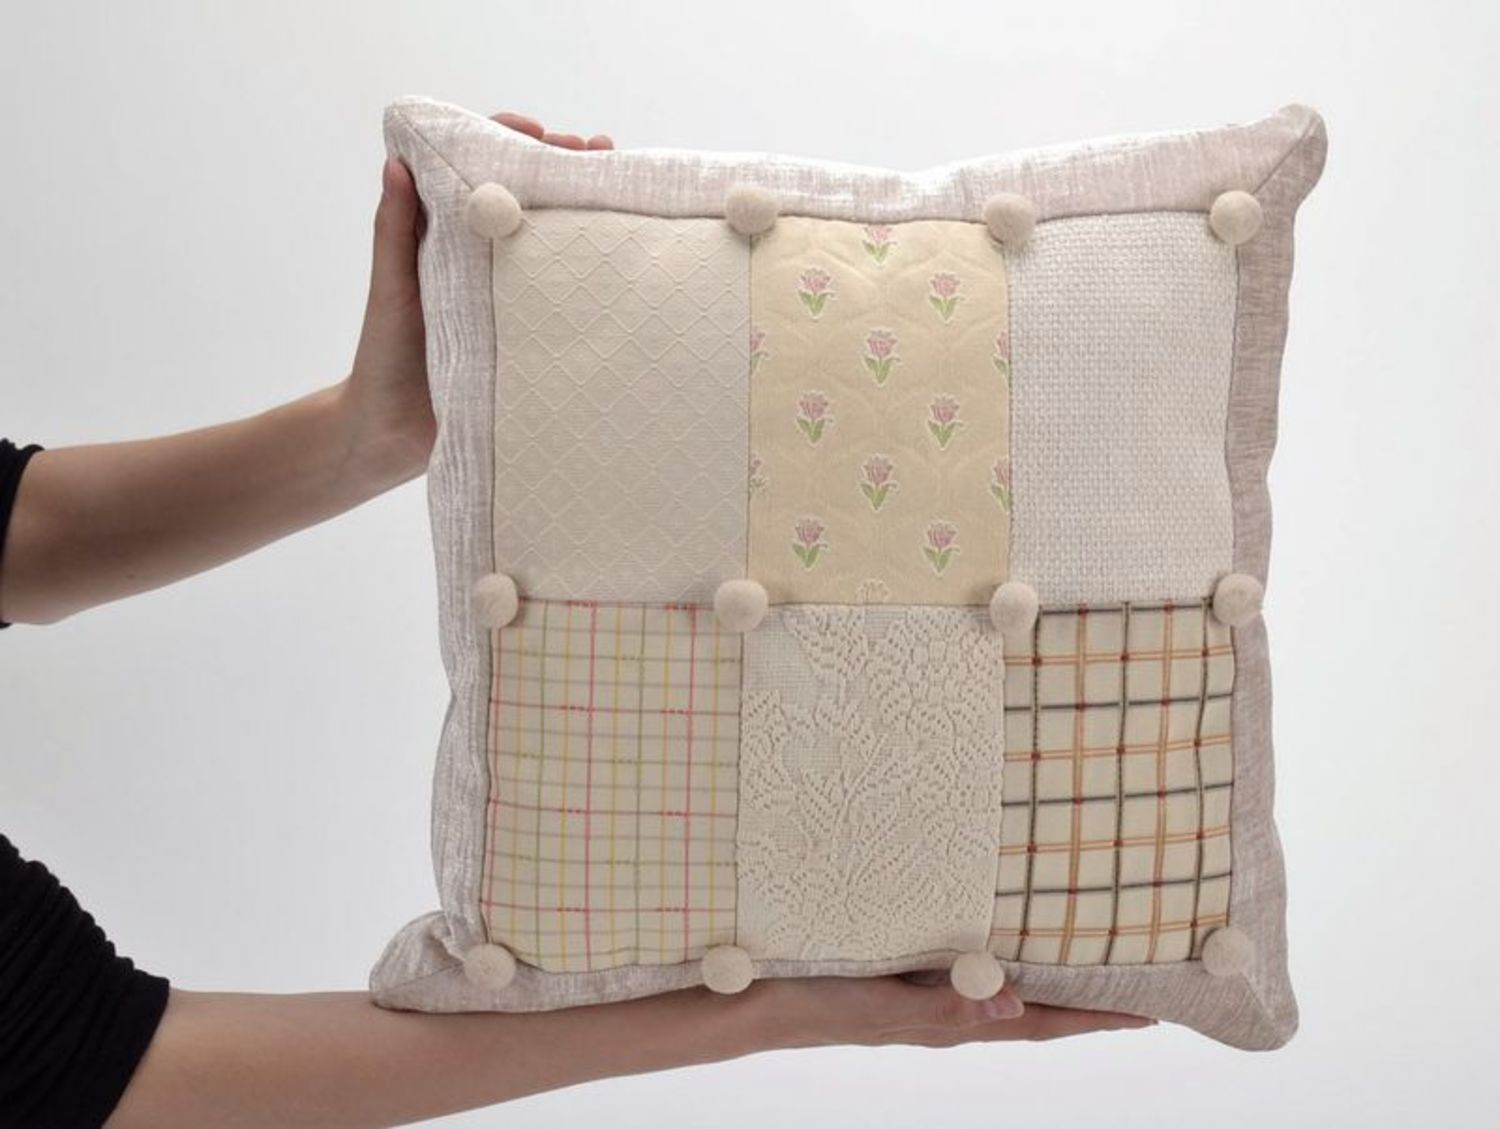 textiles and carpets Pillow made from cotton and polyester